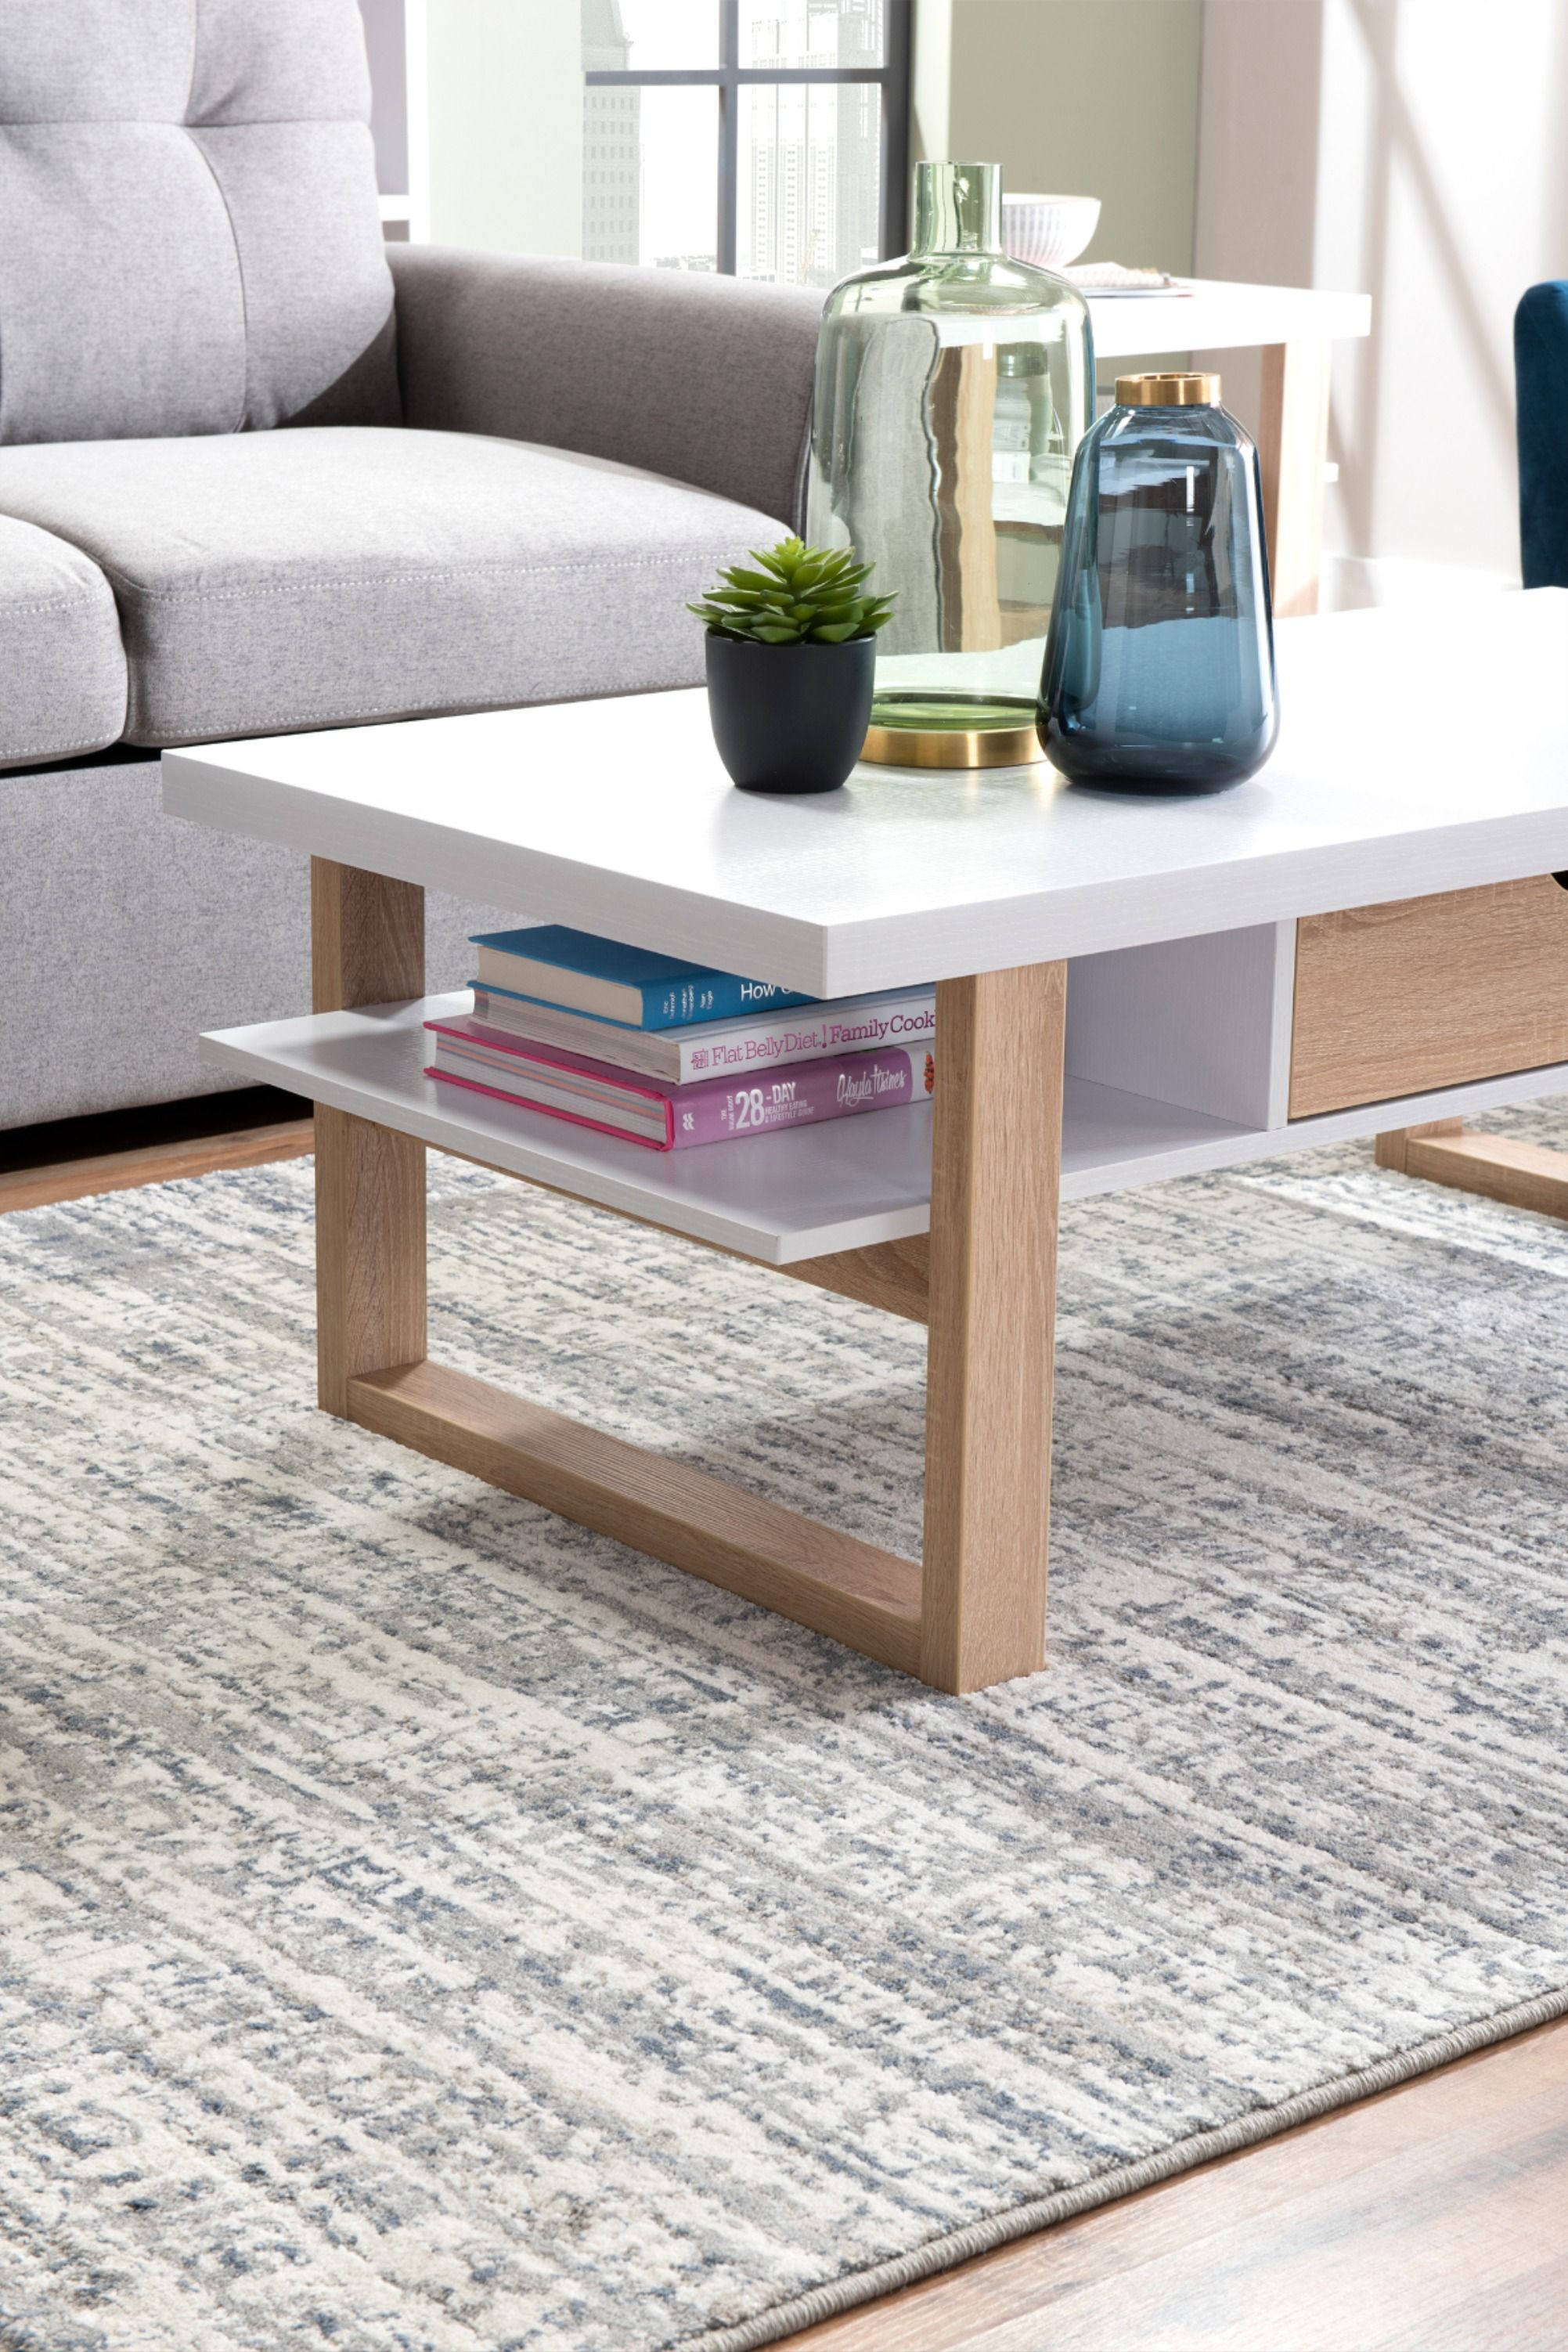 Izaac Coffee Table In 2021 Coffee Table Home Decor Home Decor Accessories [ 3004 x 2003 Pixel ]